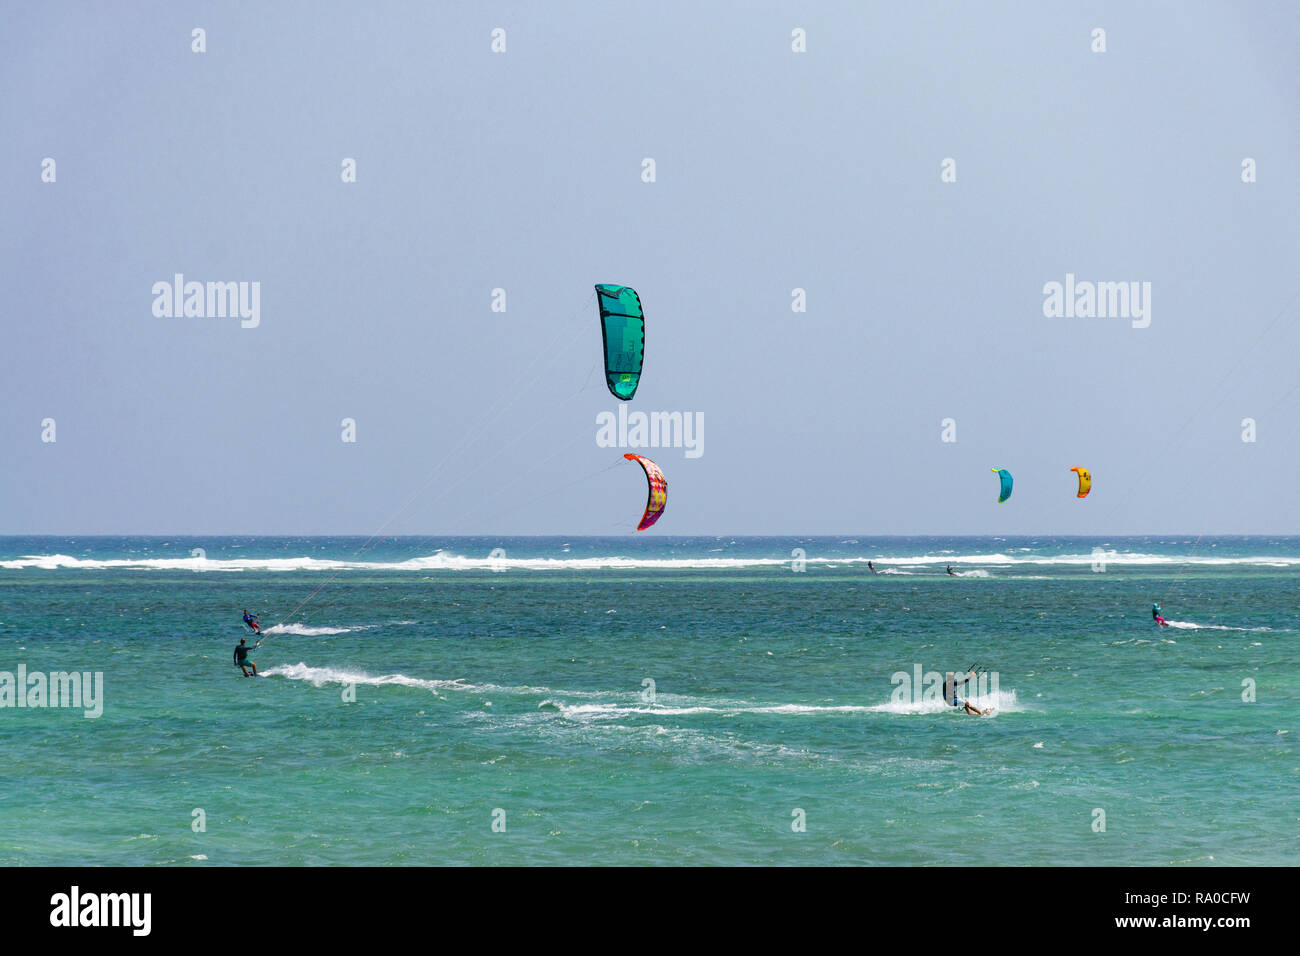 Several kitesurfers on the Indian ocean at Diani on a sunny day, Kenya - Stock Image